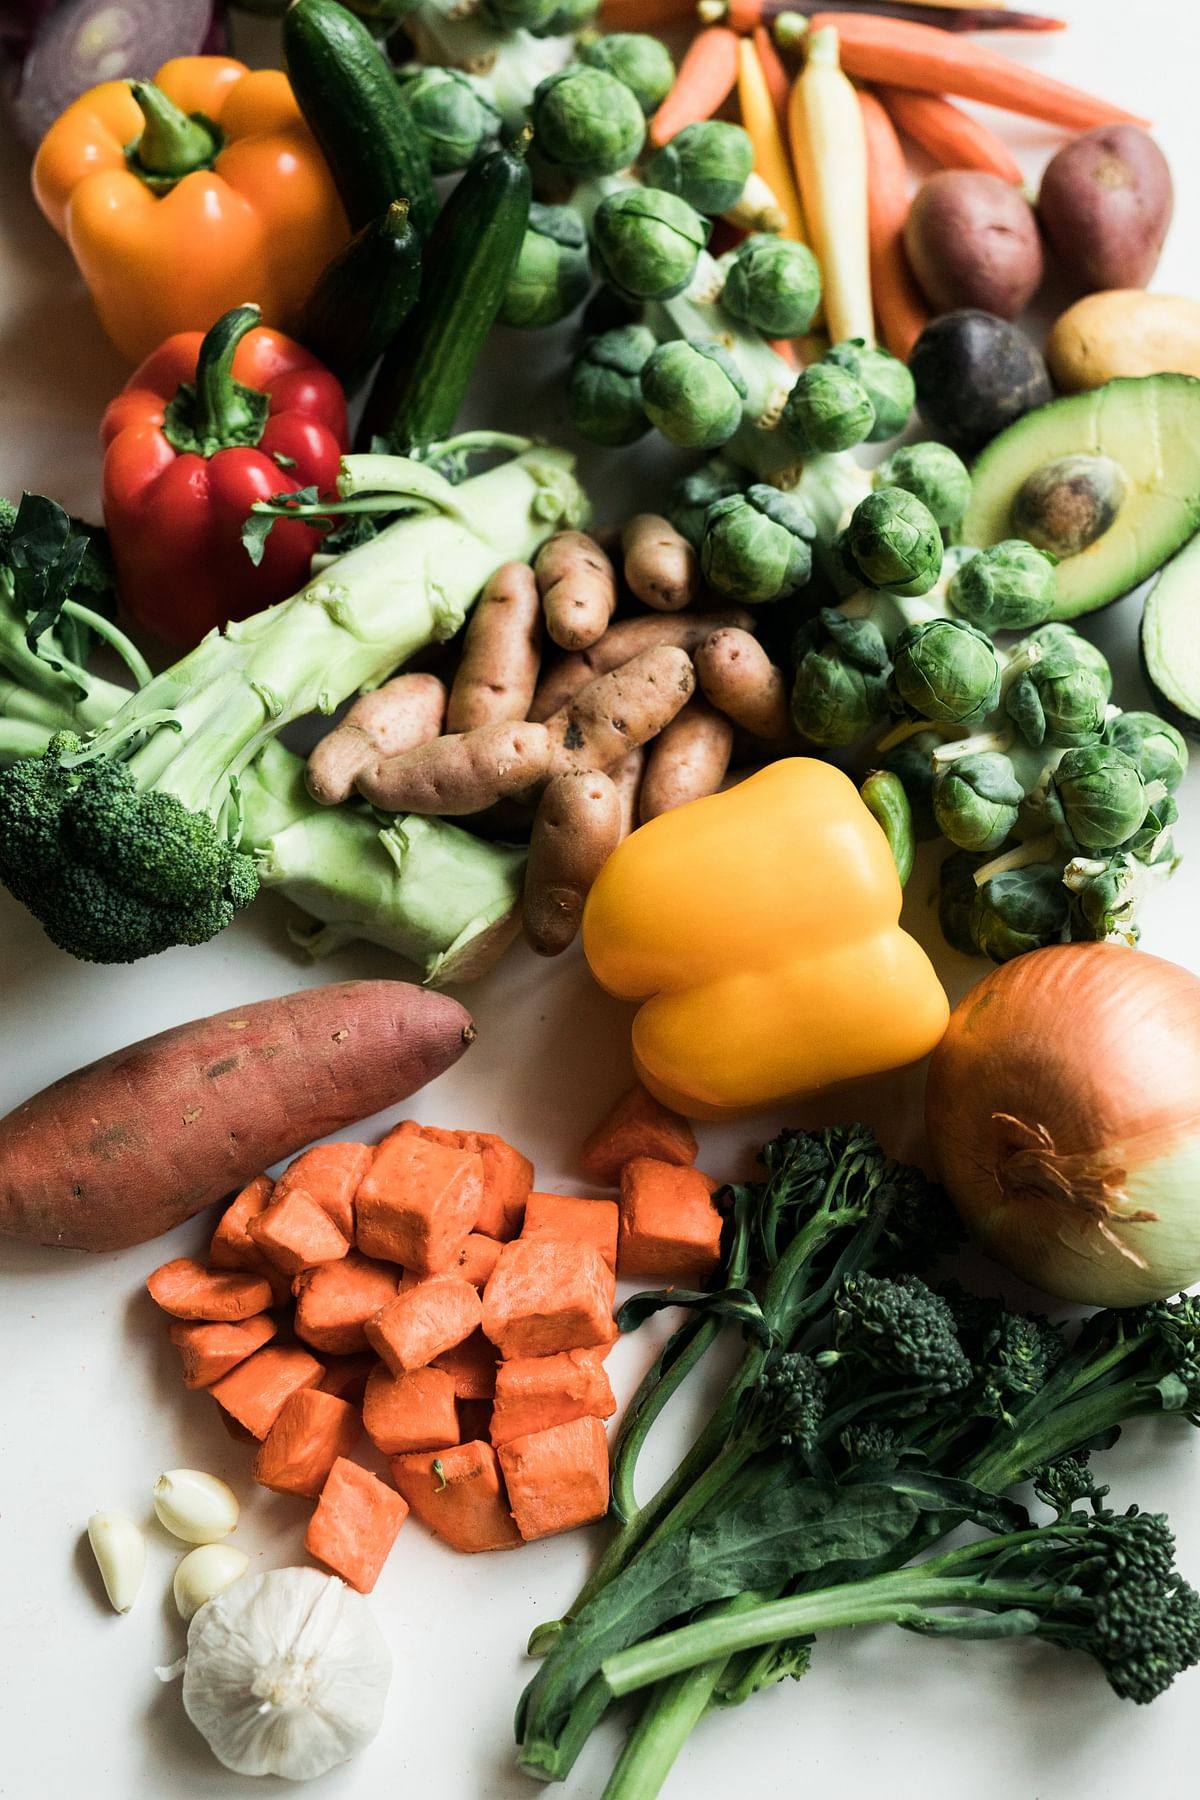 Senior Citizens: A balanced diet is necessary to have a healthy life